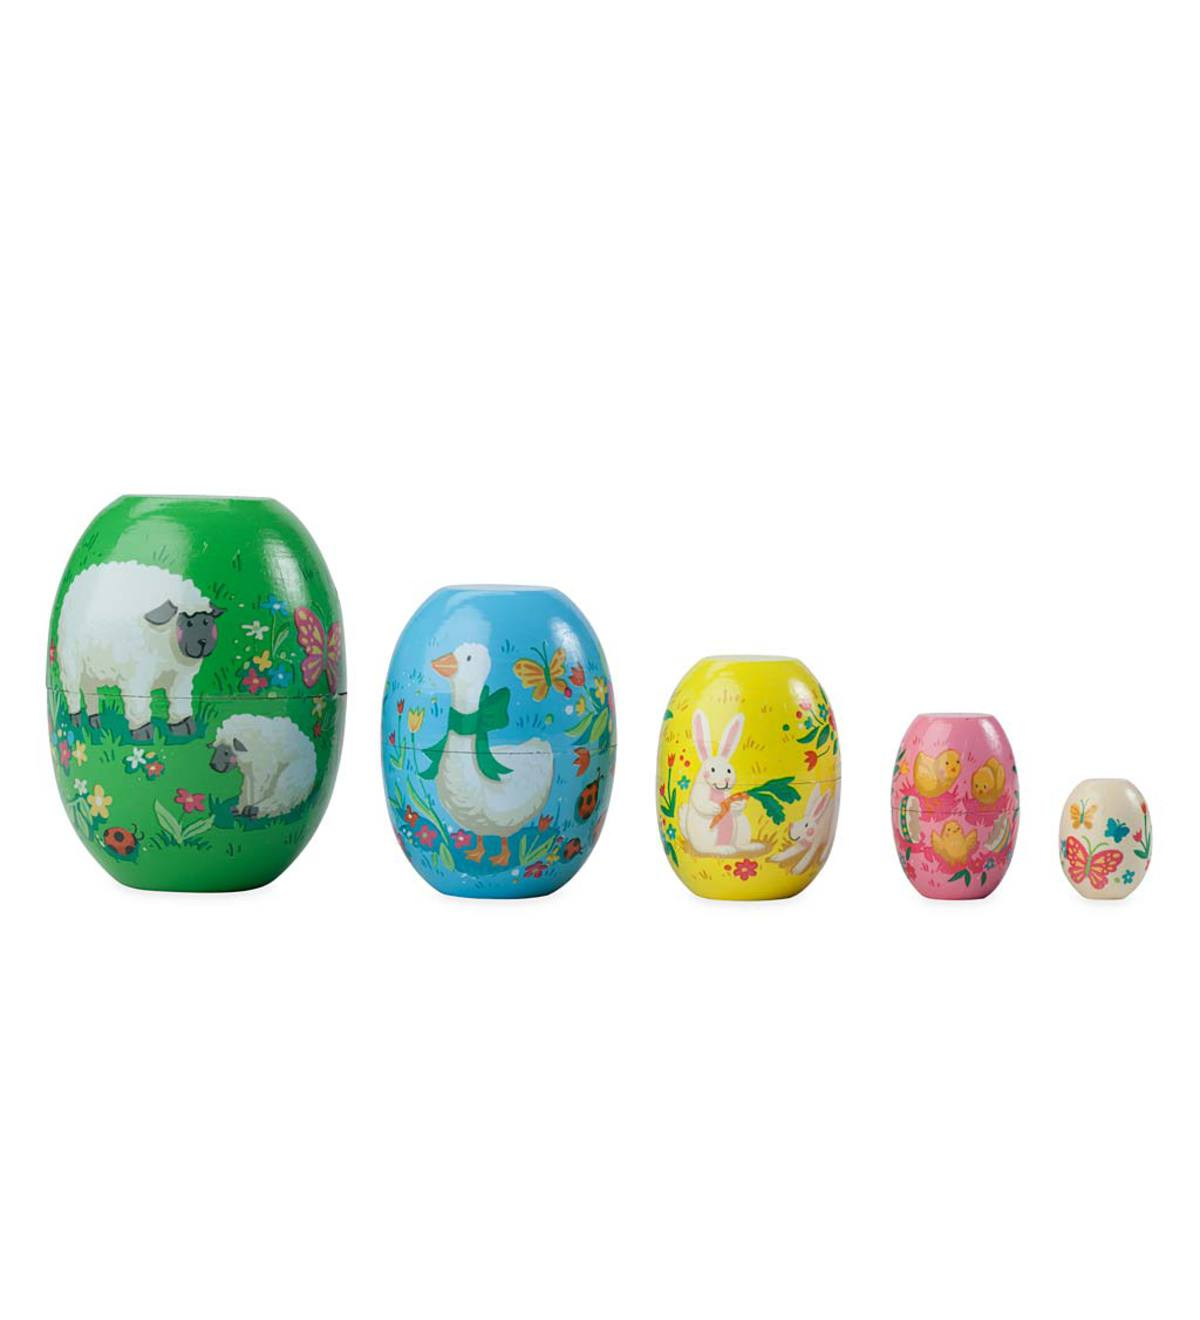 Joyful Spring Nesting Set